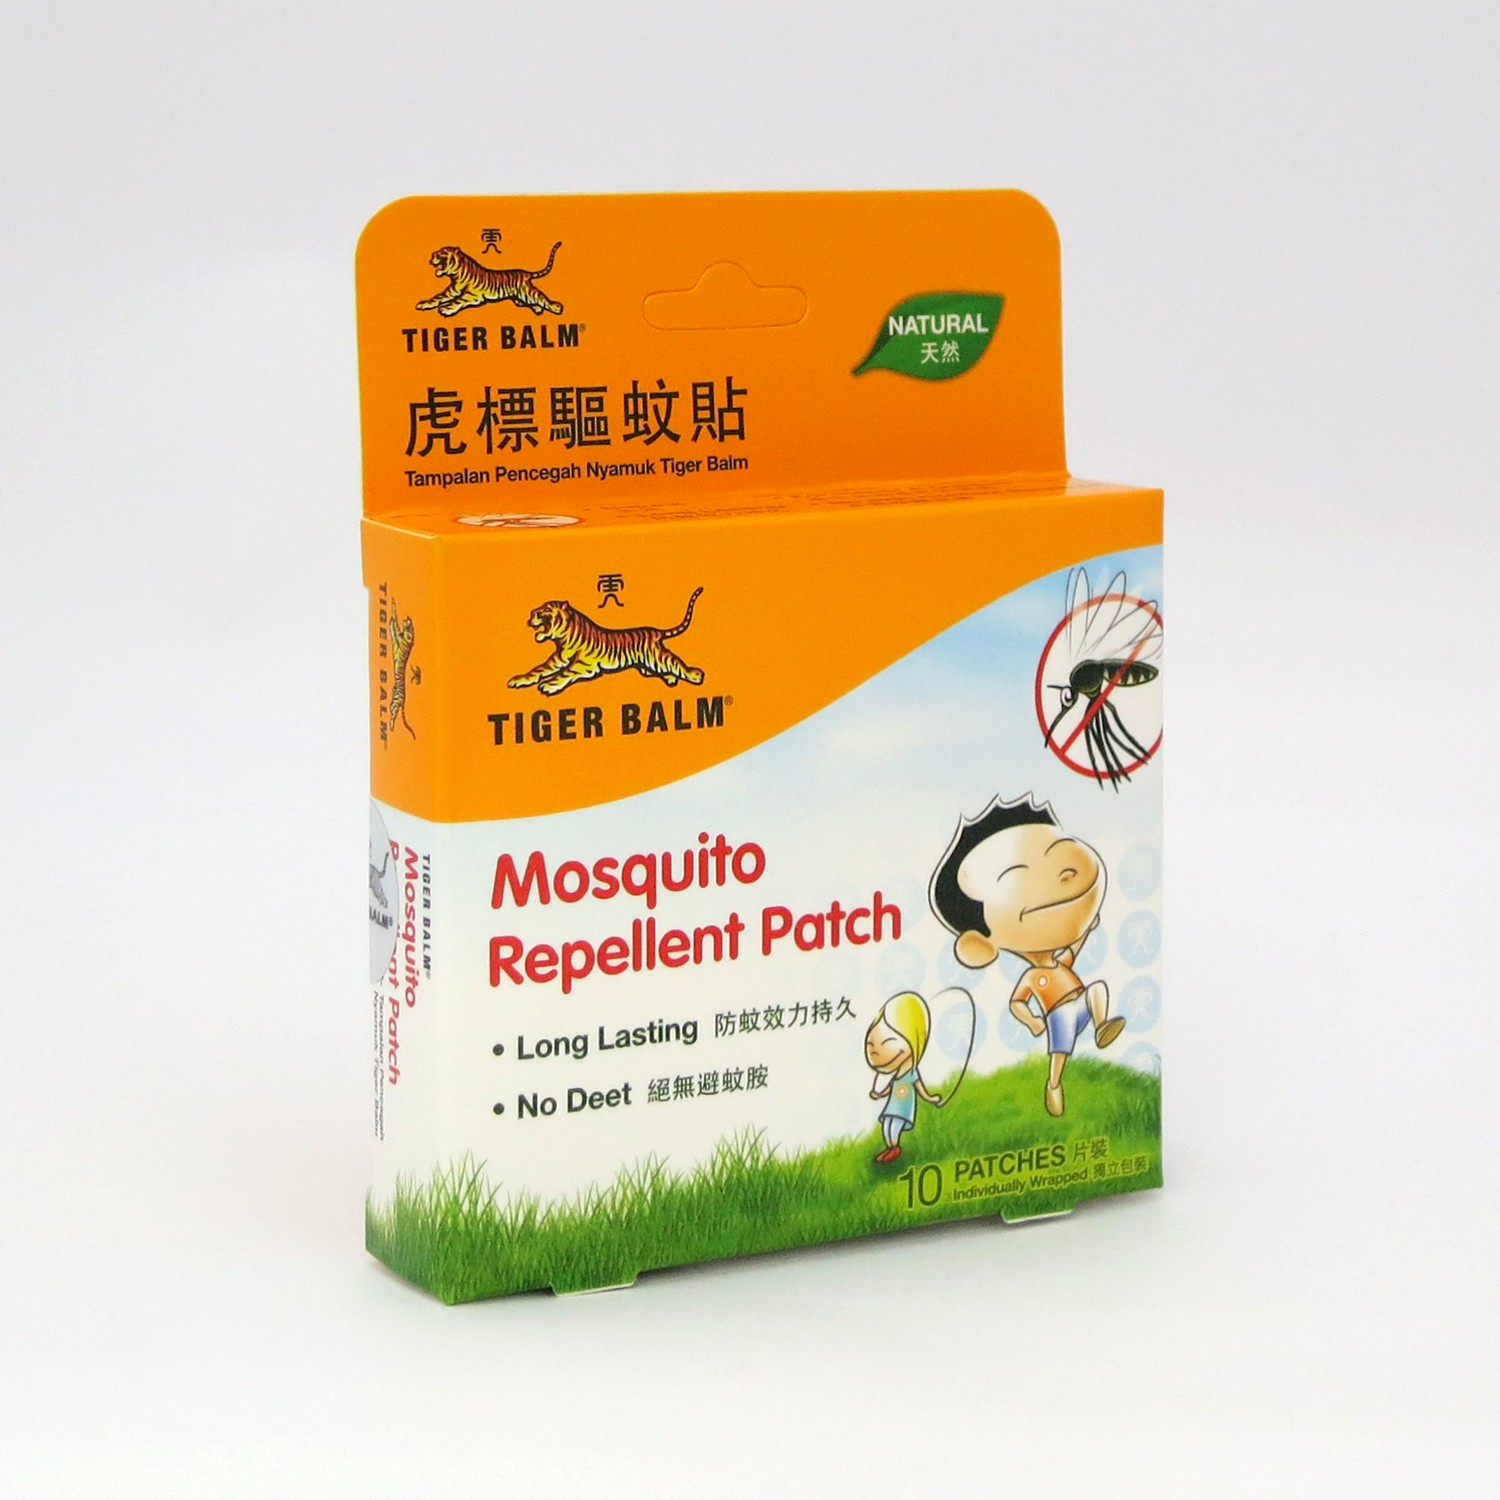 Tiger Balm Mosquito Repellent Patch 10 S